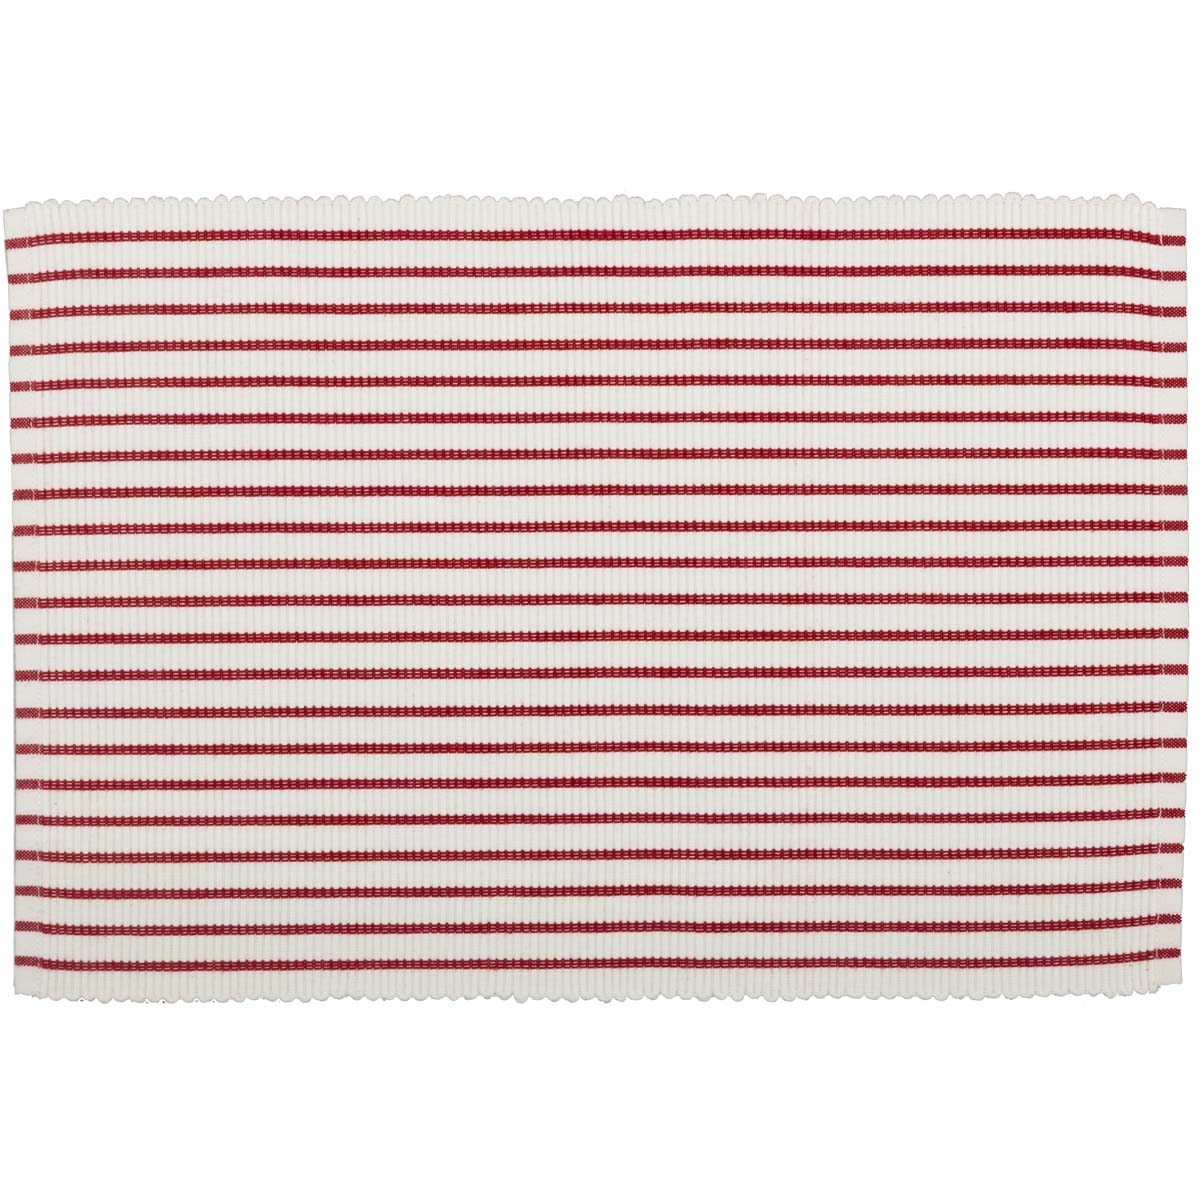 Audrey-Red-Ribbed-Placemat-Set-of-6-12x18-image-3